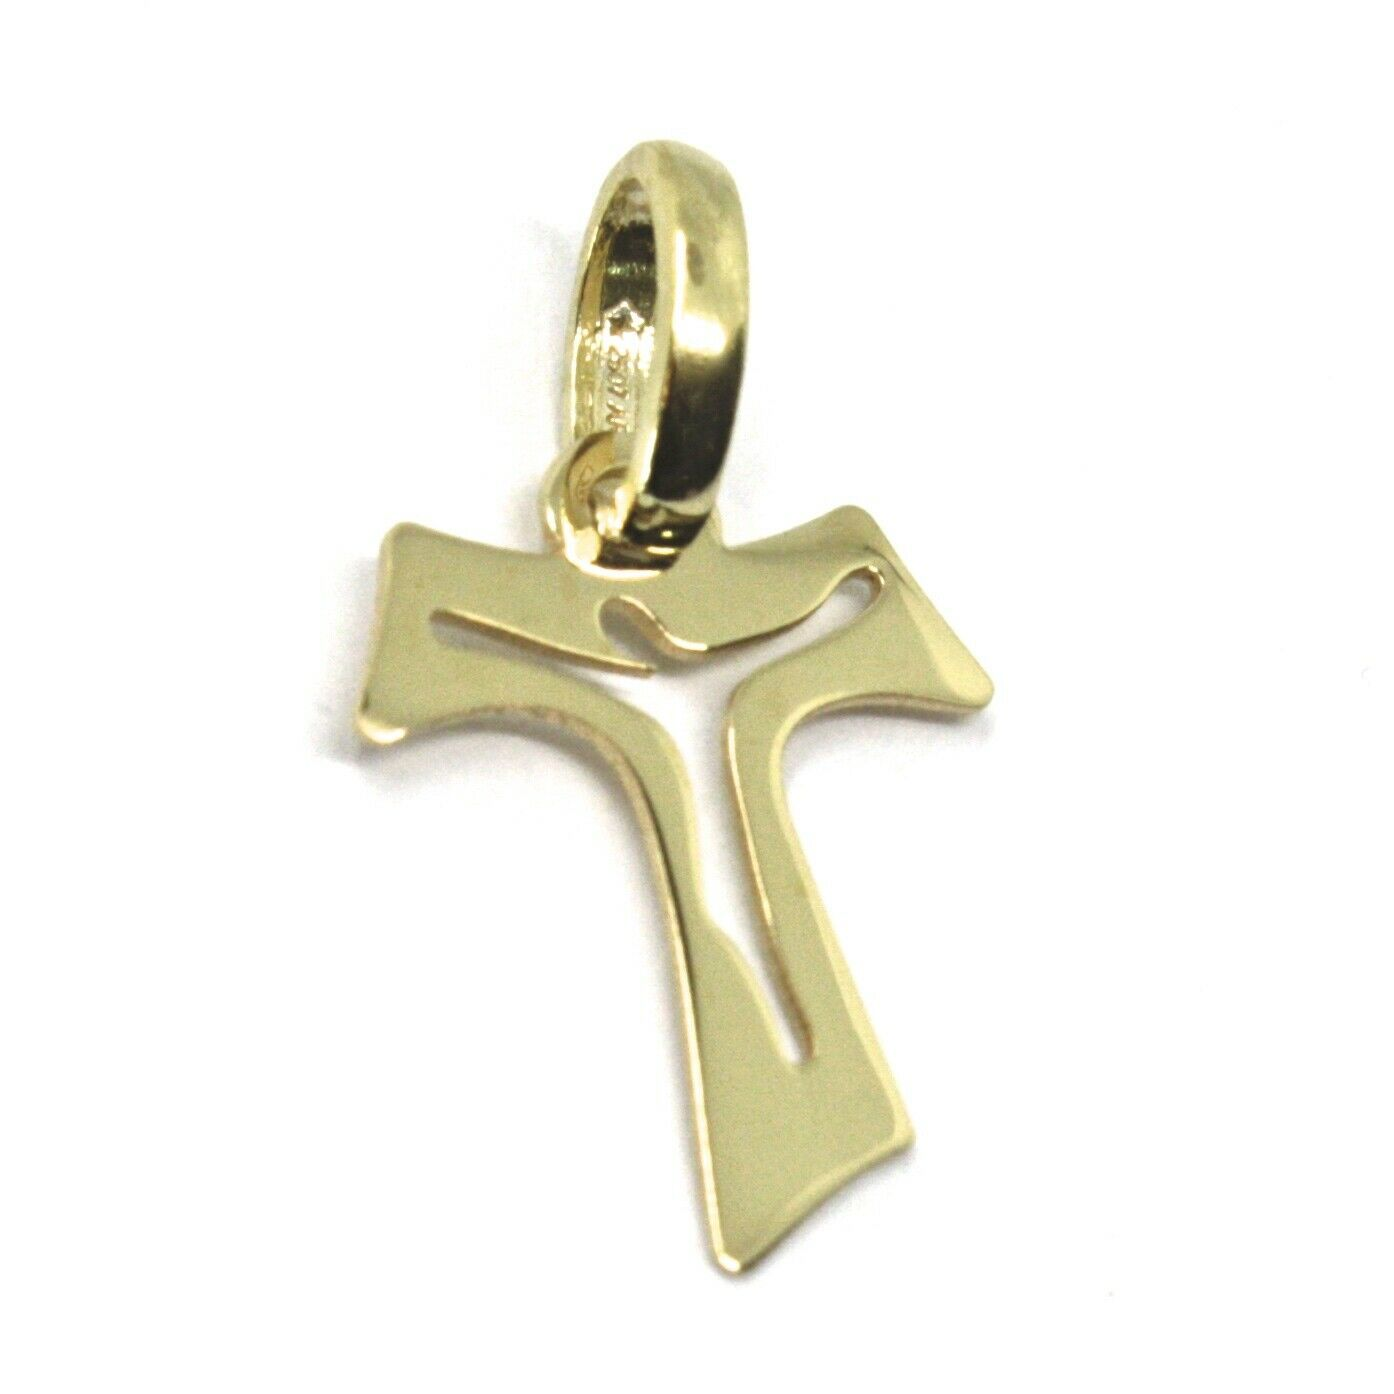 18K YELLOW GOLD CROSS, FRANCISCAN TAU TAO SAINT FRANCIS WITH JESUS, 0.6 inches